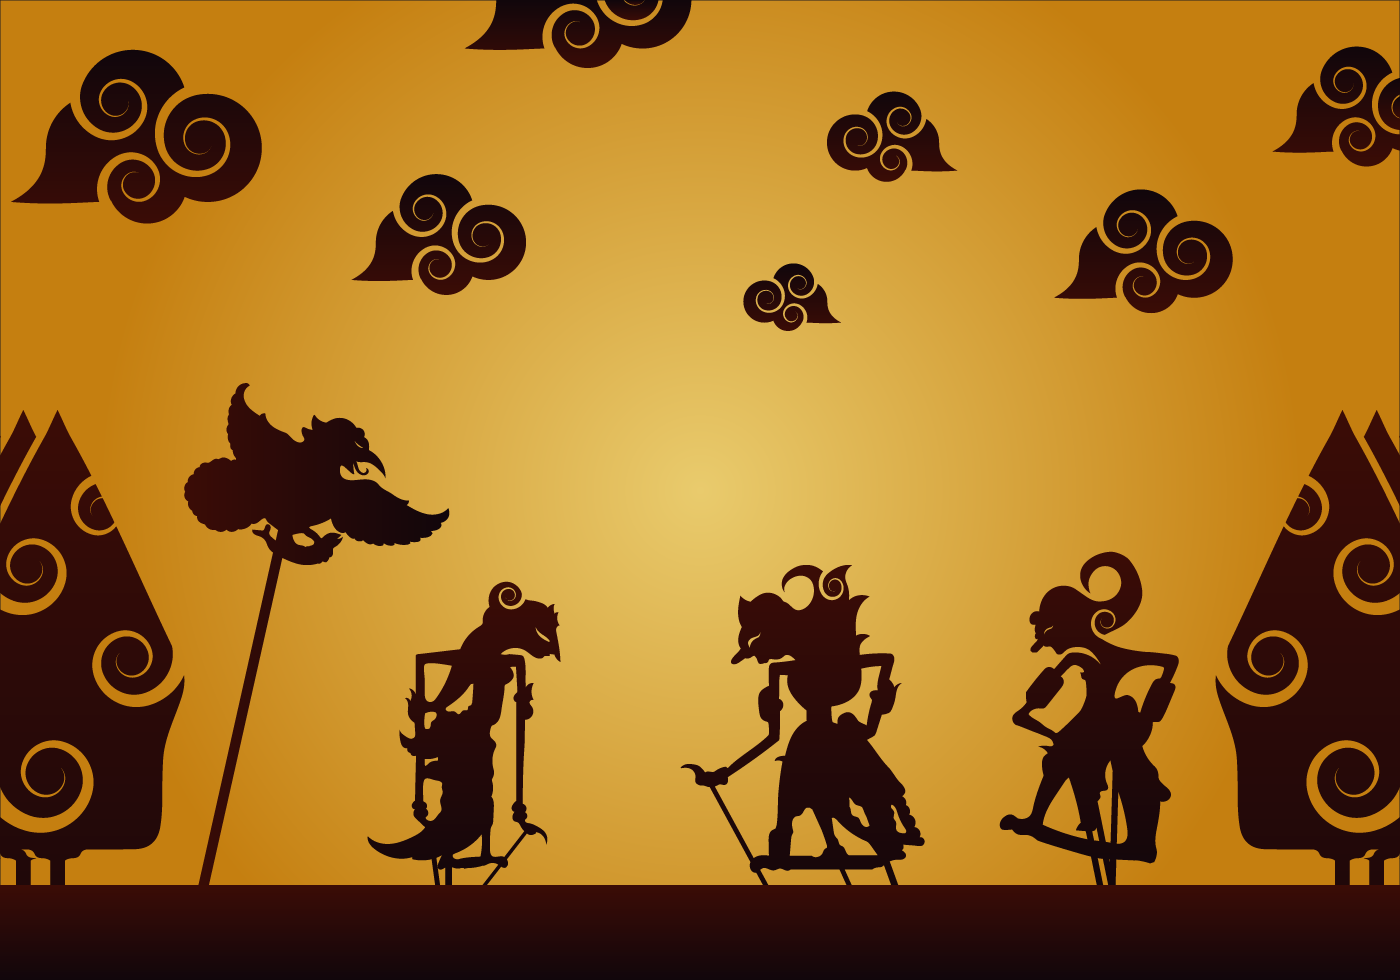 Free wayang vector download free vector art stock graphics amp images